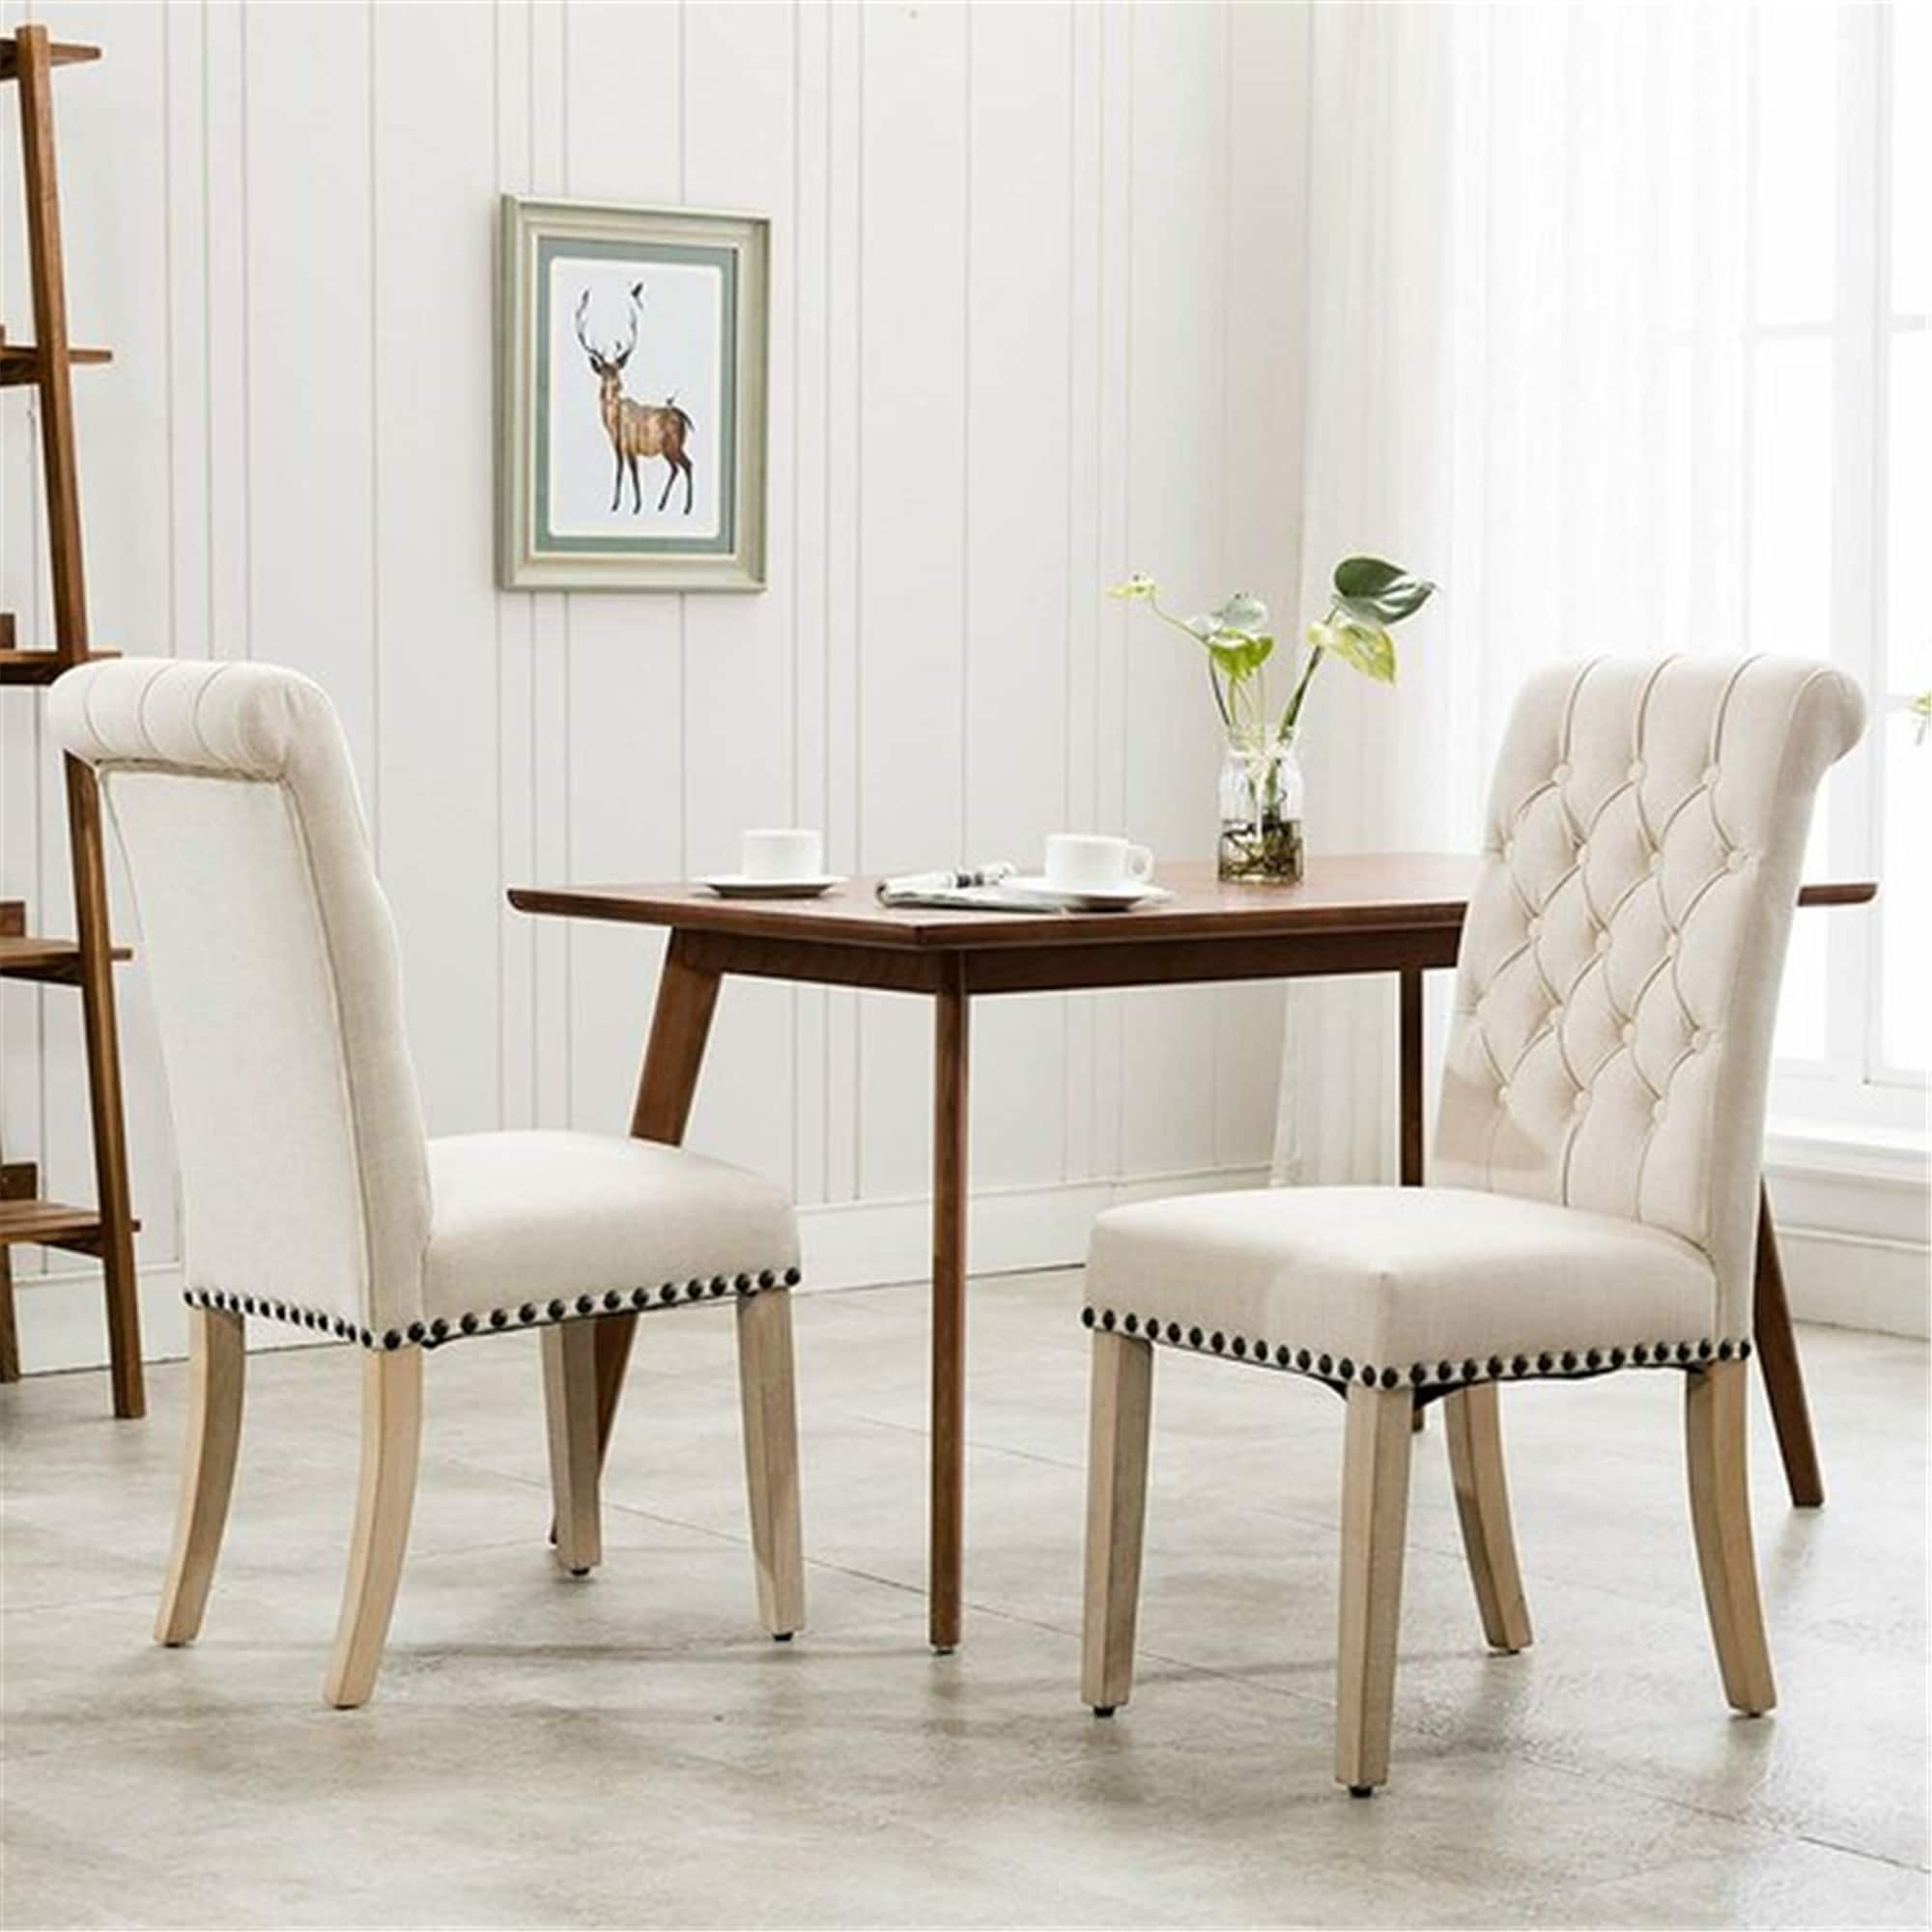 Tufted Linen Upholstered Parsons Chair Set Of 2 Overstock 32338237